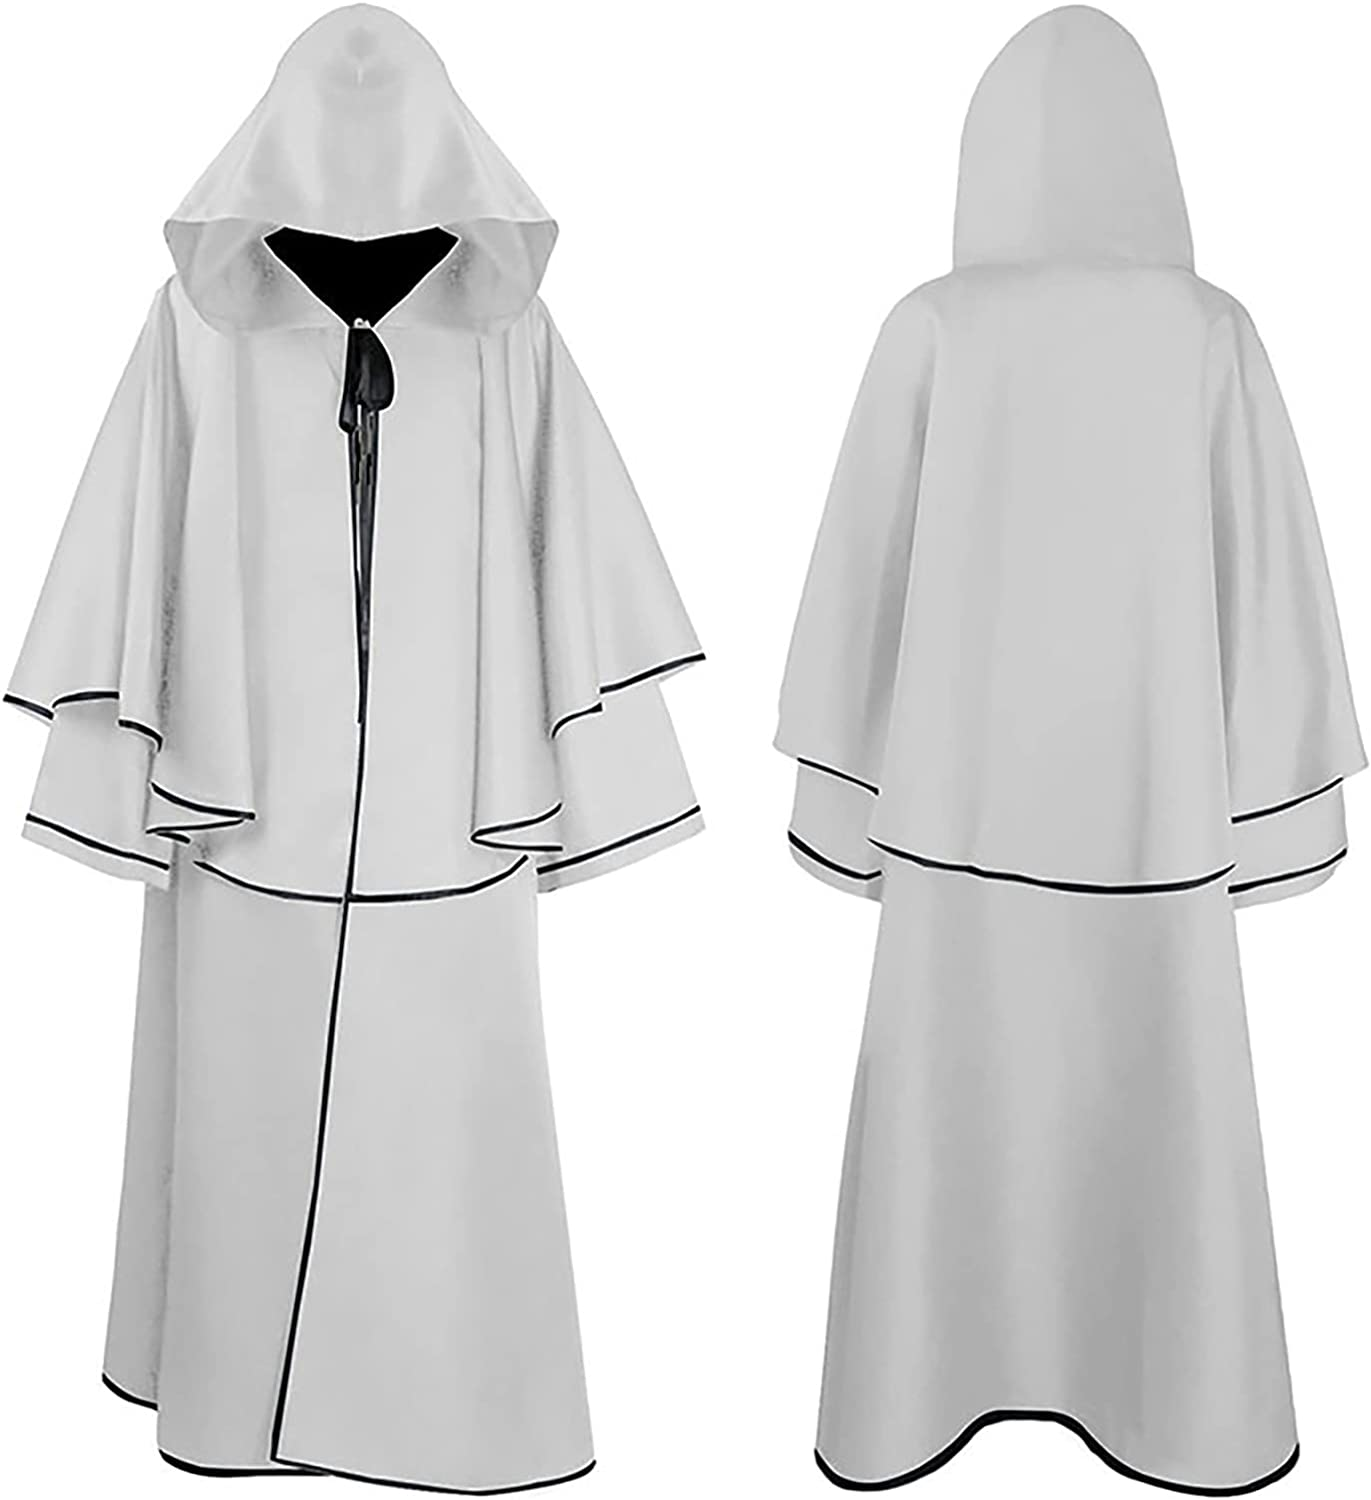 R-cors Unisex Tunic Hooded Robe Cosplay Costume New Orleans Mall Cape Cloak Max 63% OFF Hallo